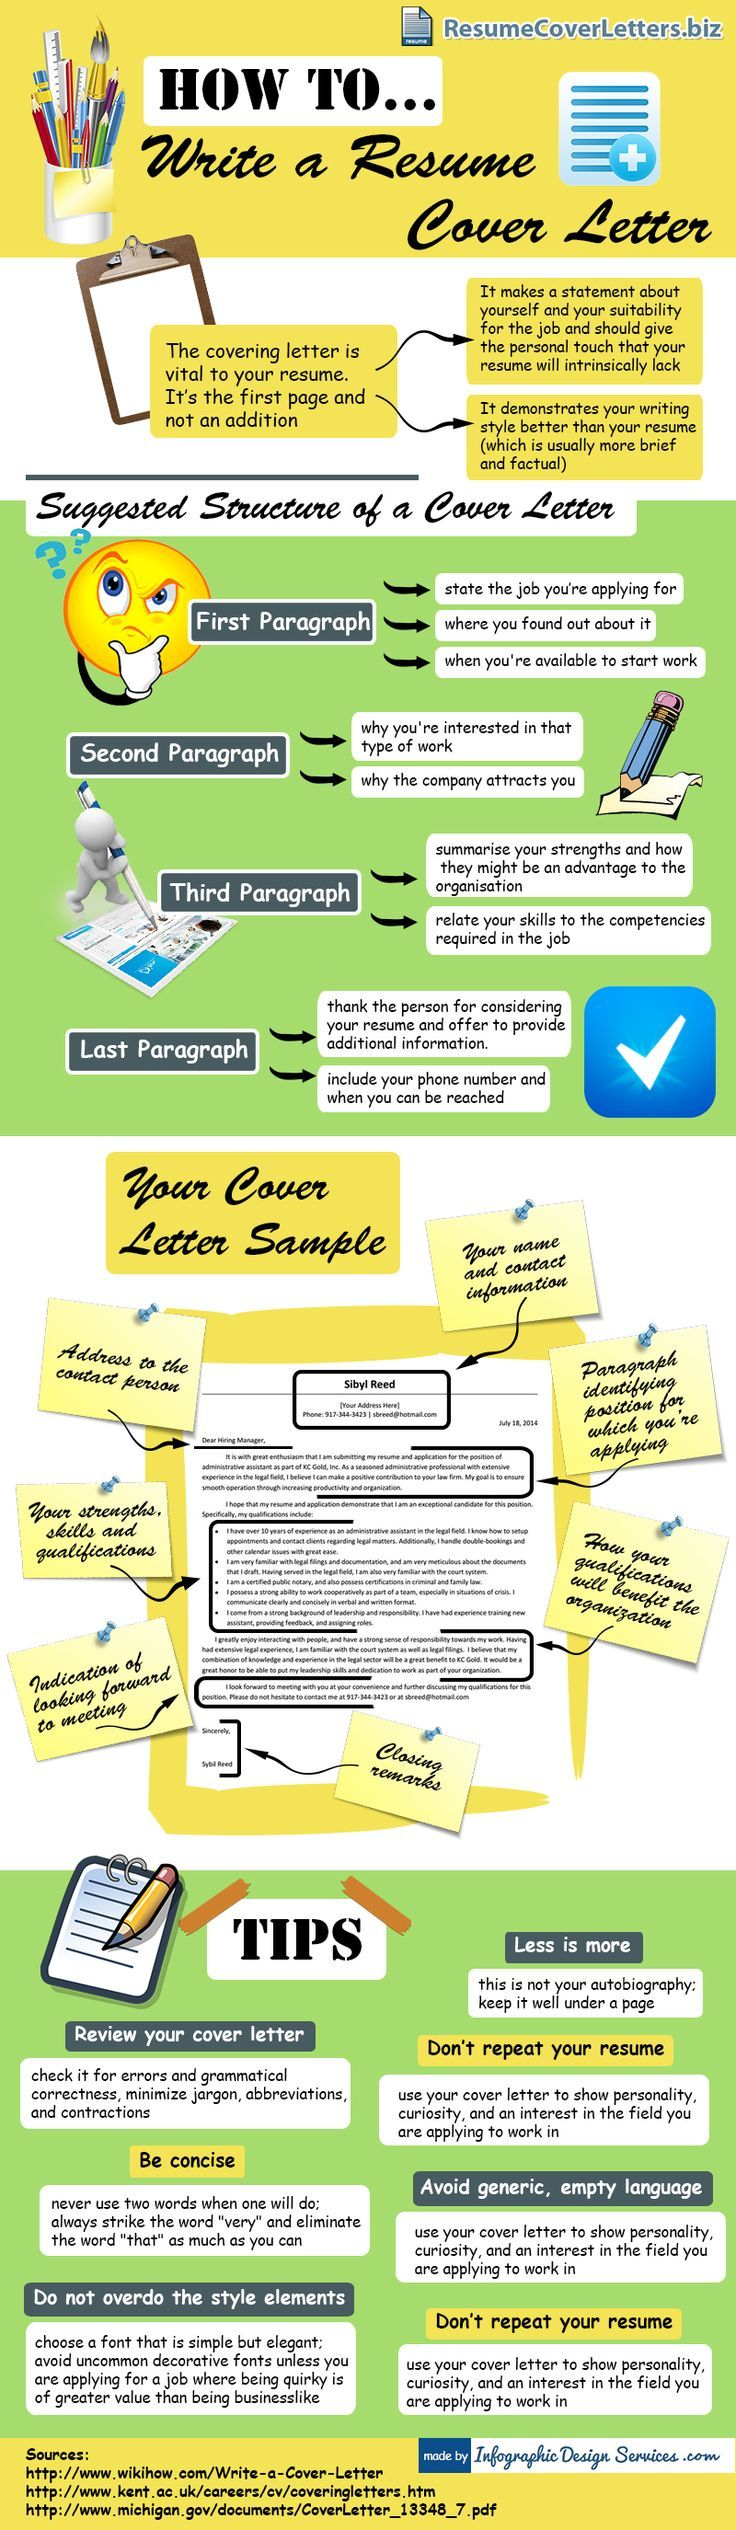 Sales And Marketing Cover Letter Extraordinary 66 Best Cover Letter Images On Pinterest  Cover Letters .